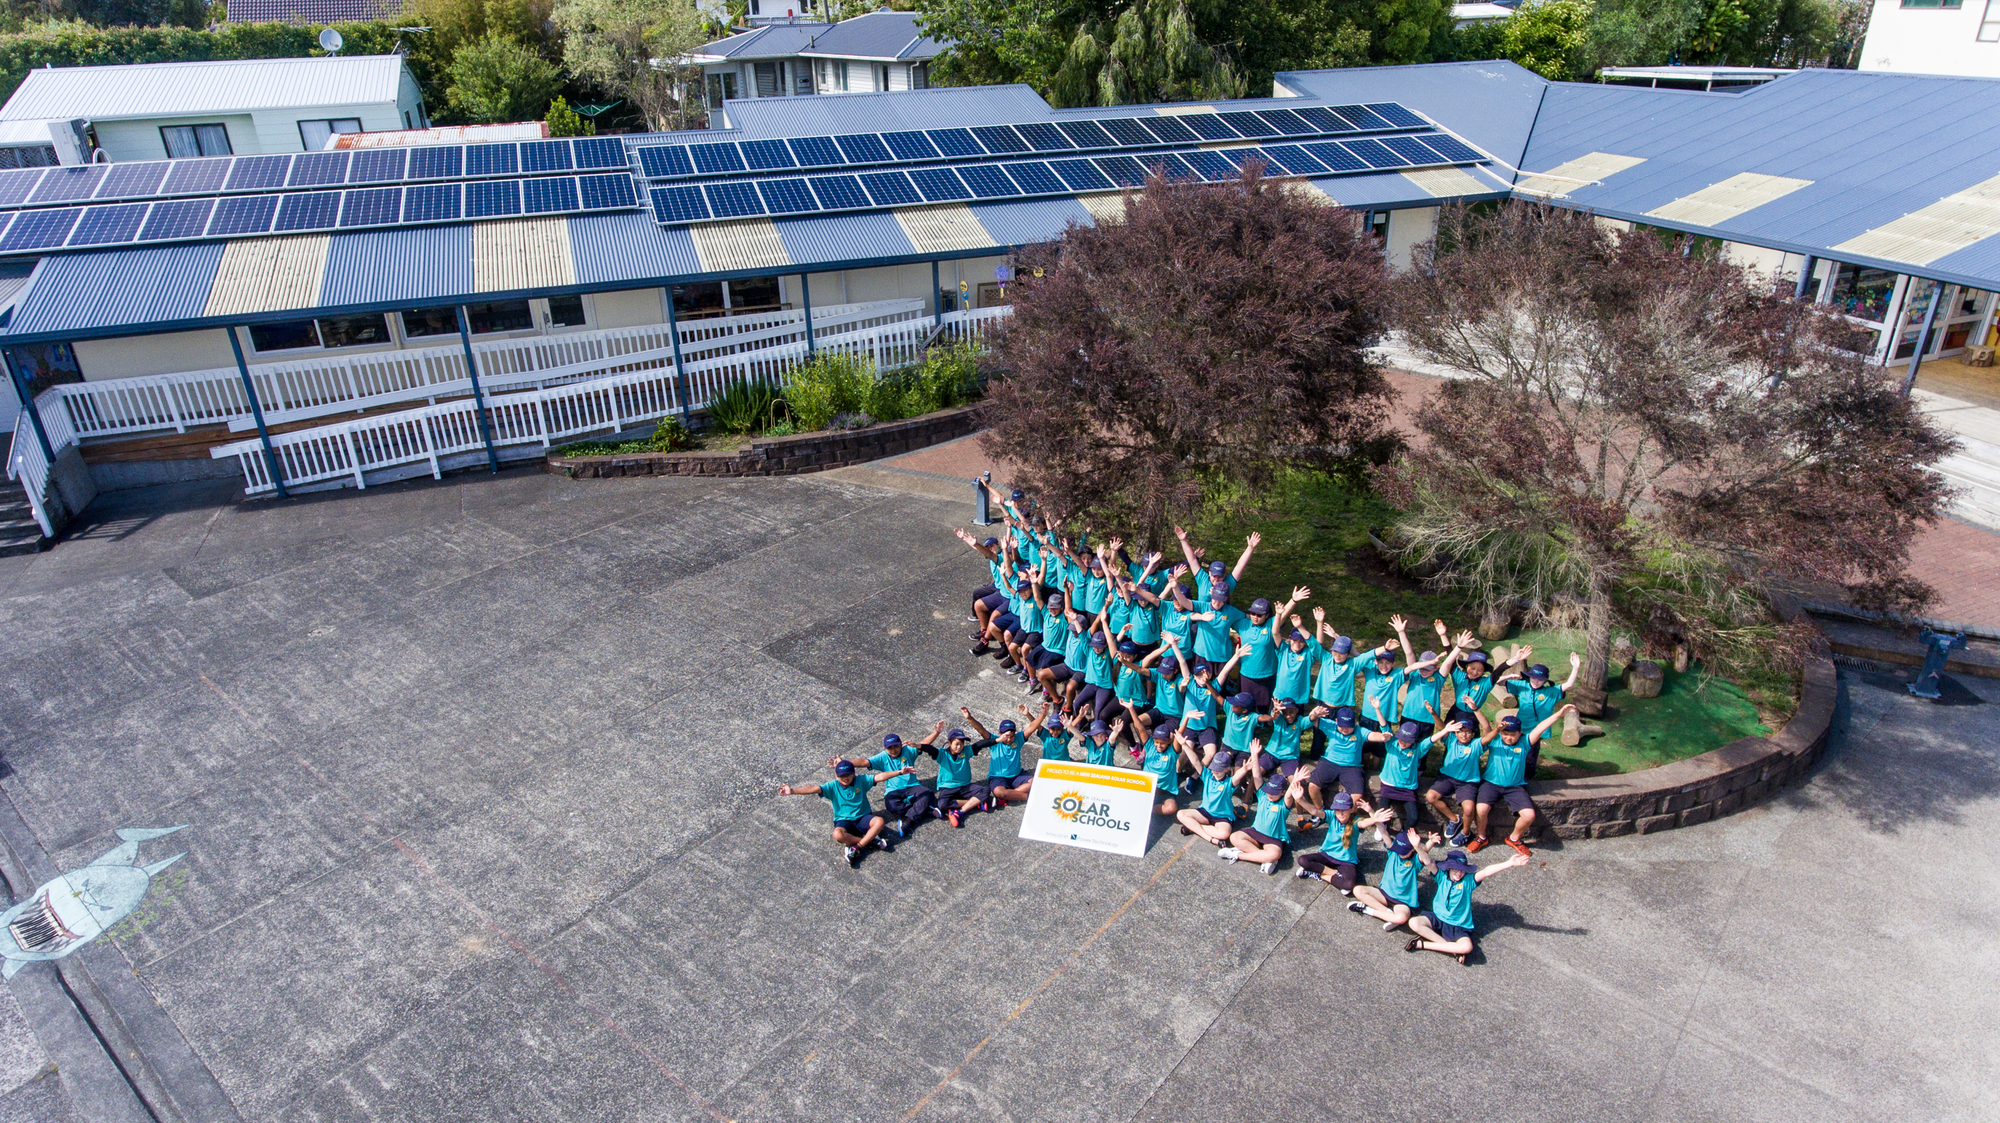 Flanshaw Road School New Zealand Solar Schools Group Photo